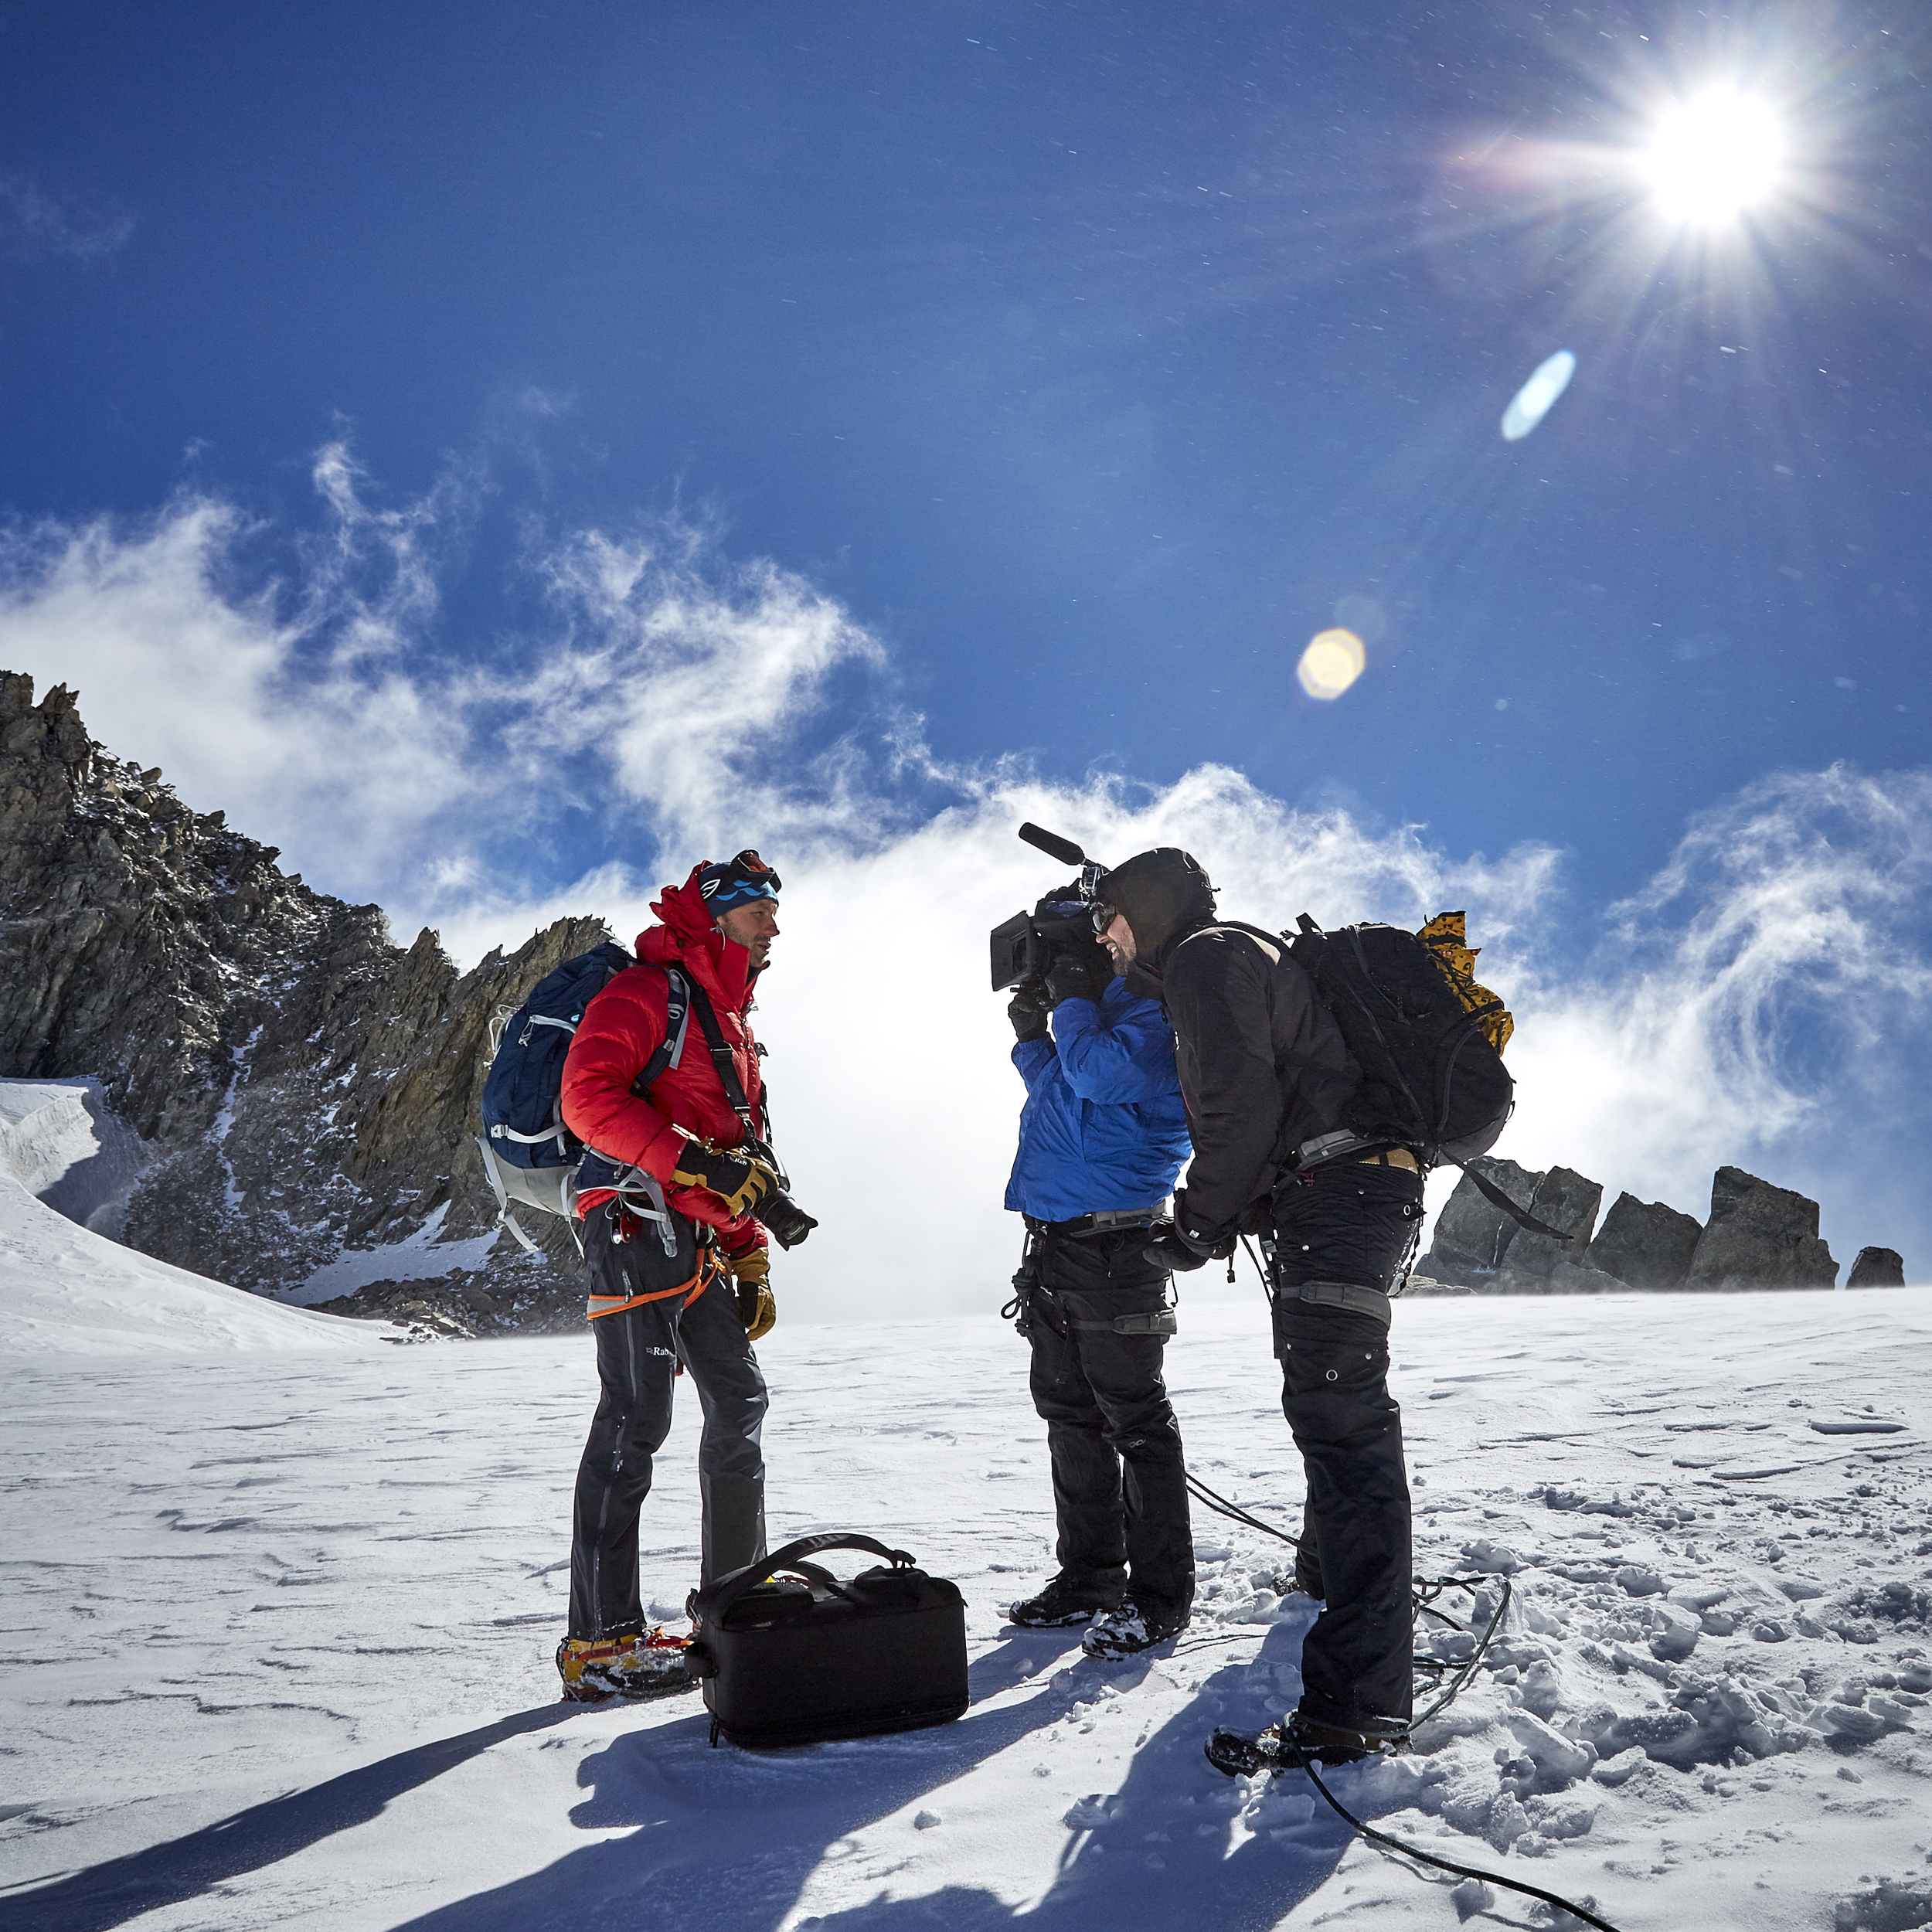 The team conduct an interview at 3300m in the Italian Alps